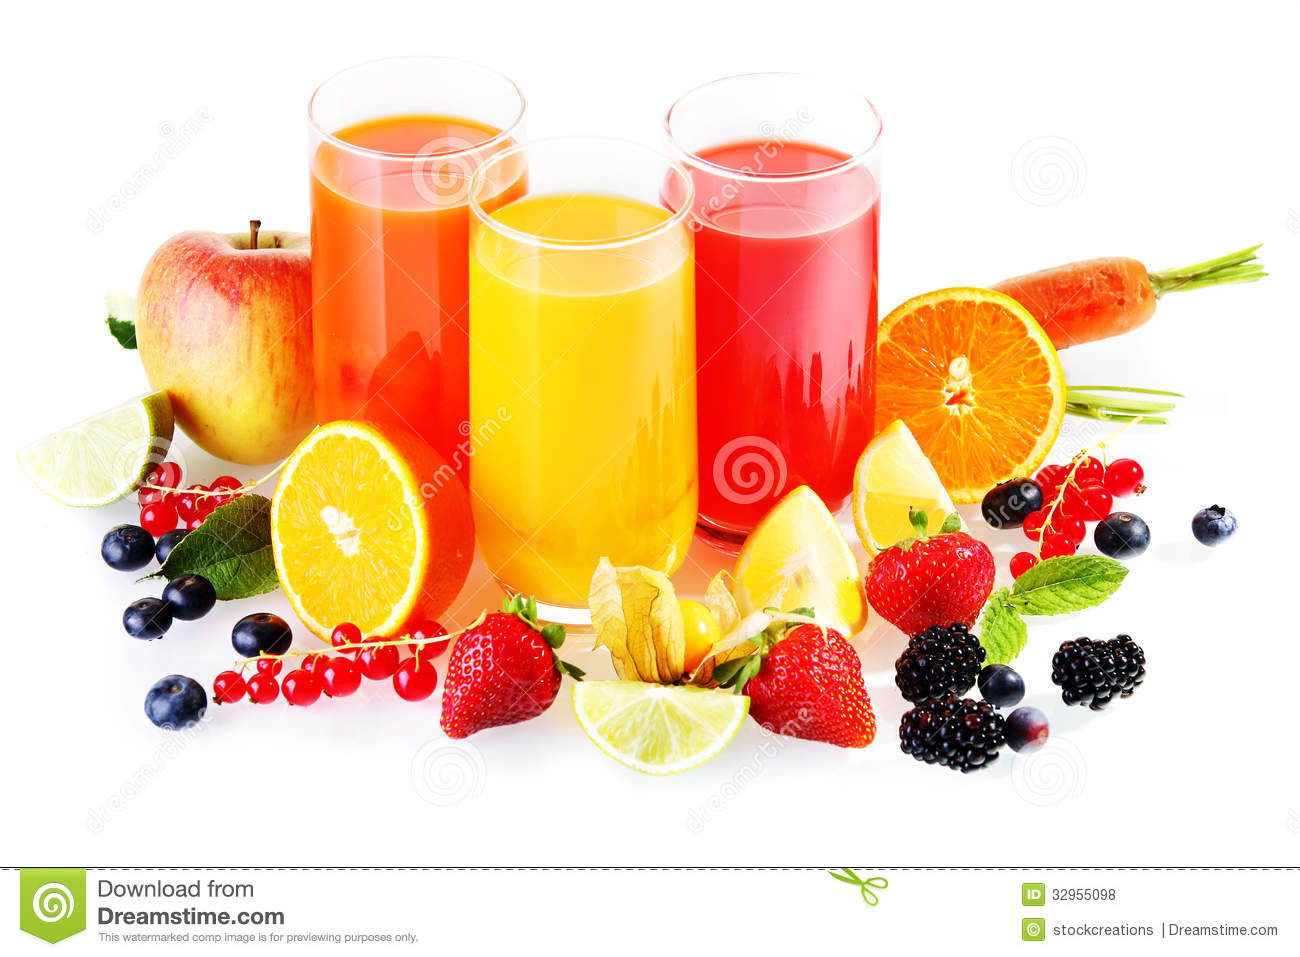 healthy fruit and vegetable juices are peas a fruit